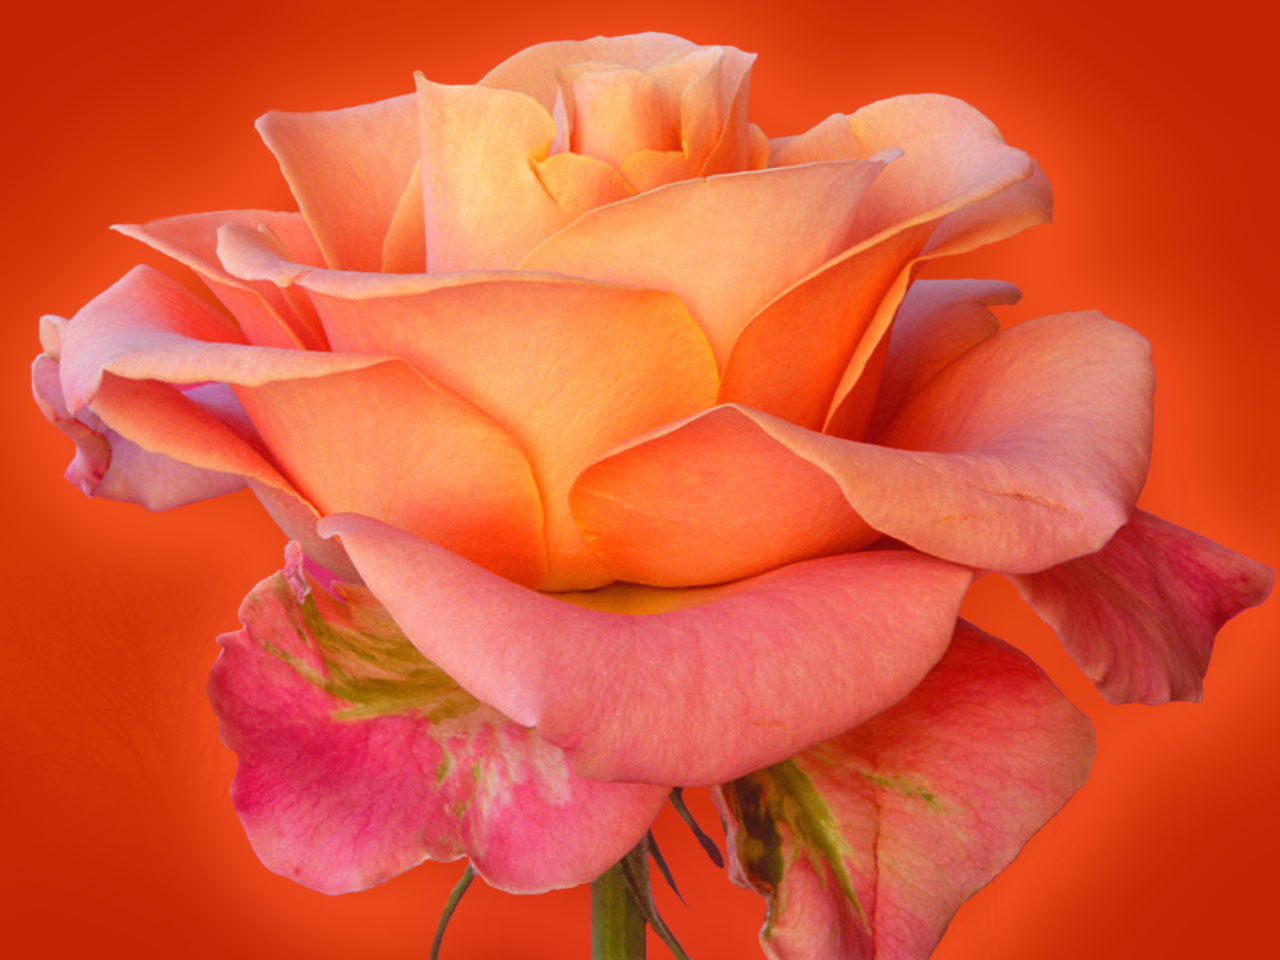 rose wallpapers rose wallpaper beauty rose wallpaper red rose 1280x960